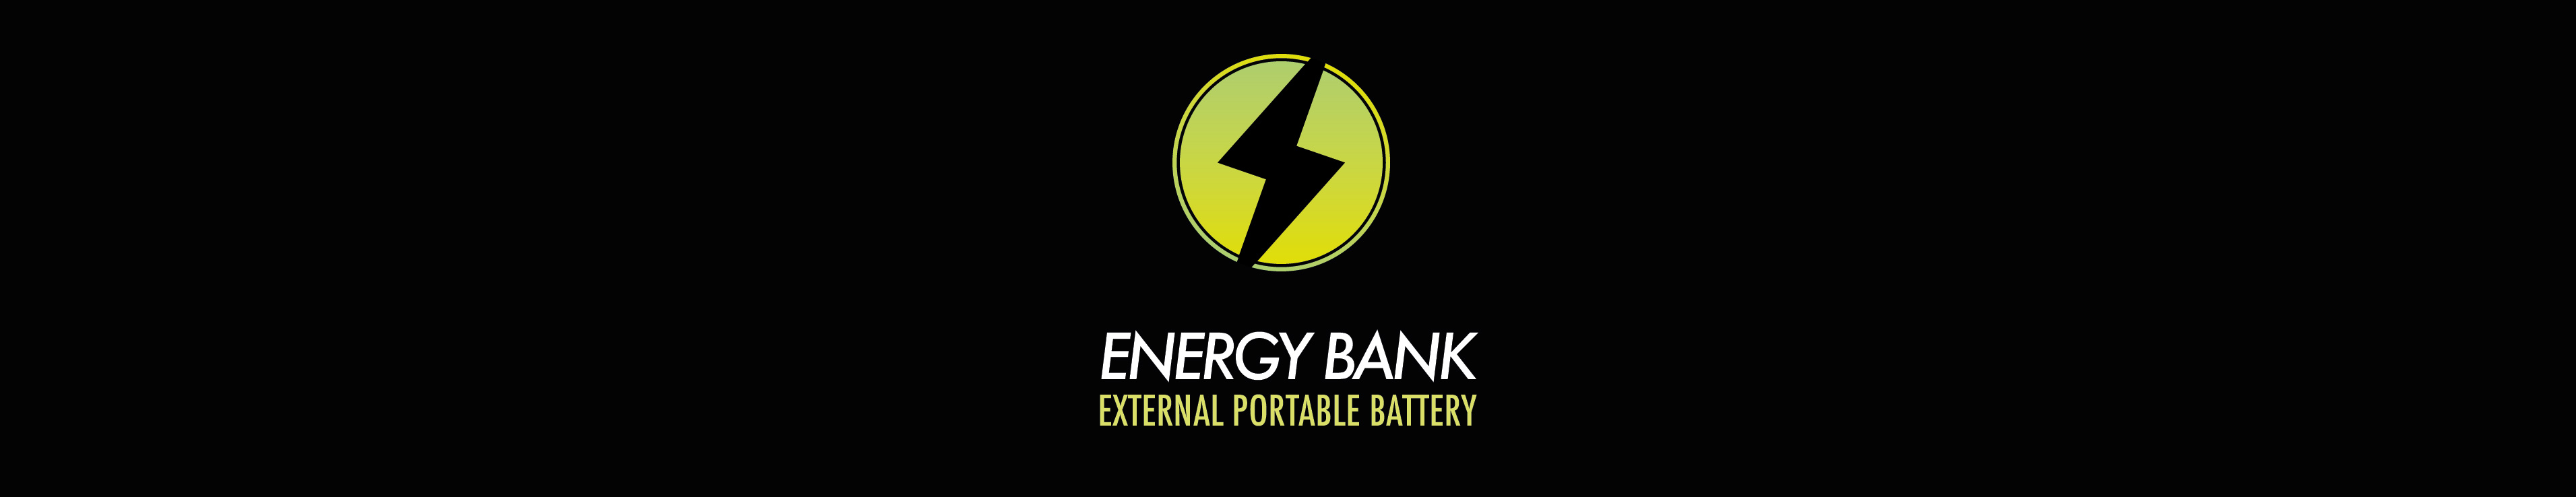 banner energy archicercle-03